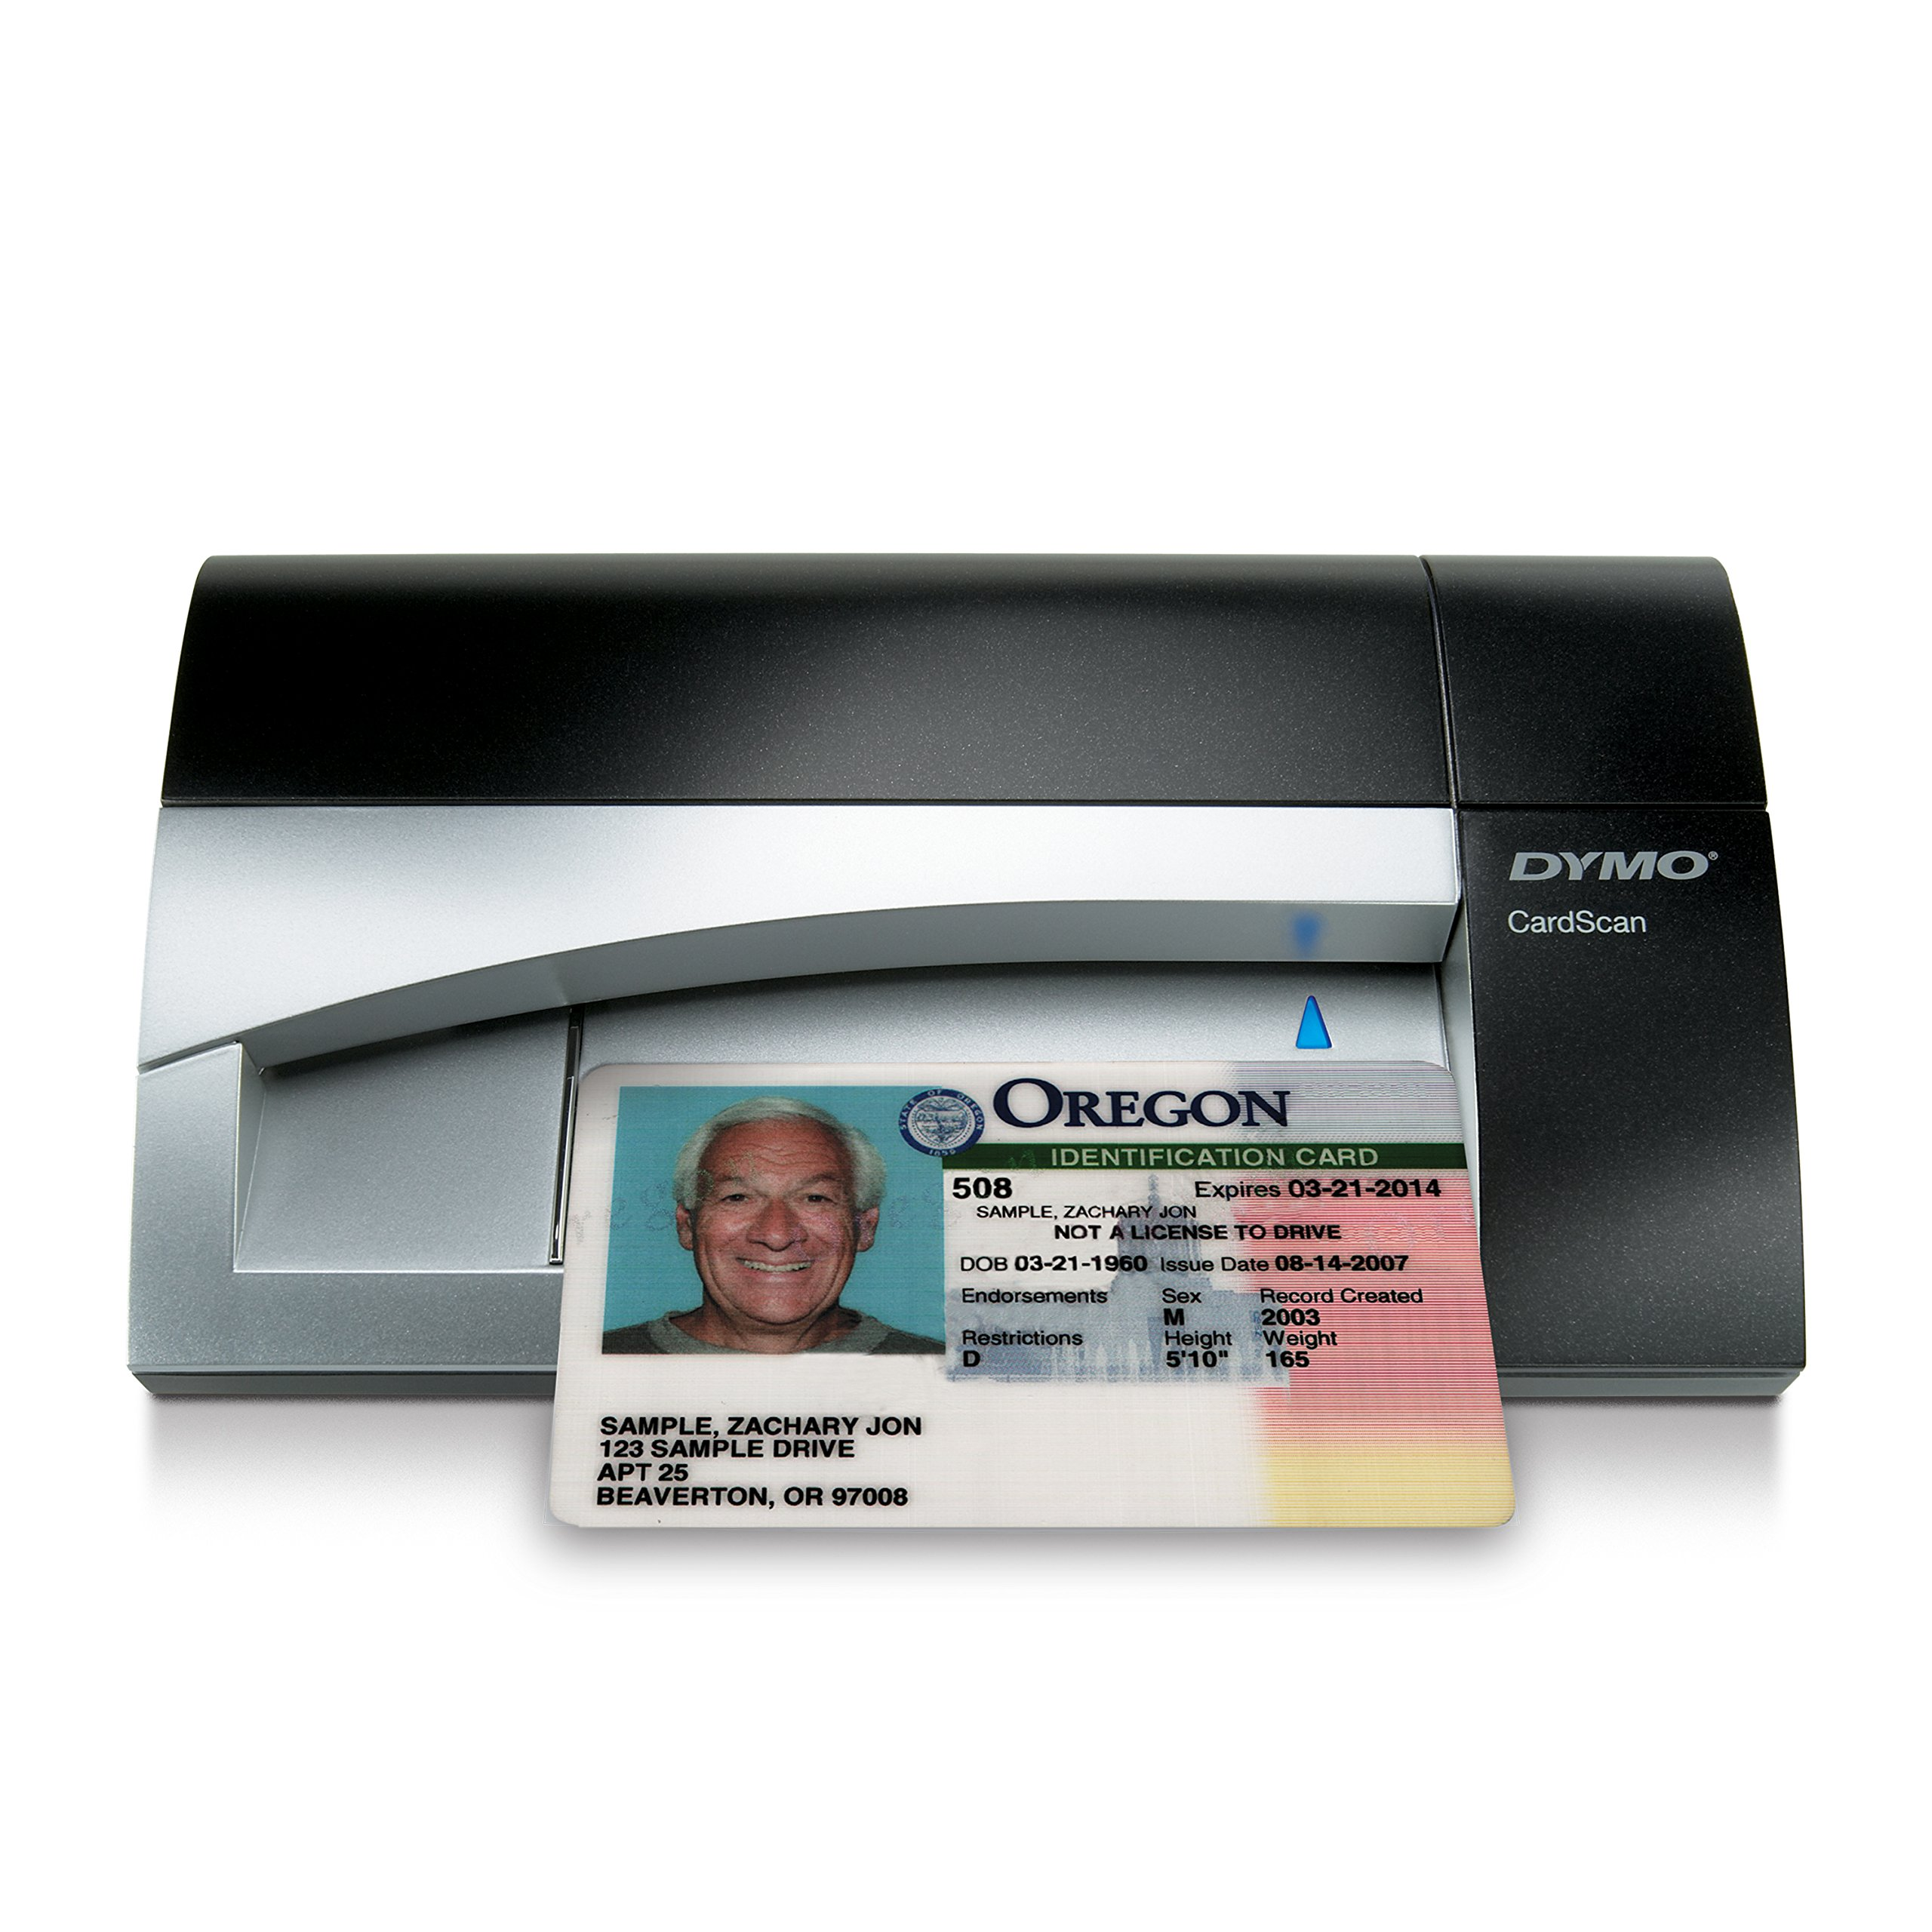 DYMO  CardScan v9 Executive Business Card Scanner and Contact Management System for PC or Mac (1760686) by DYMO (Image #4)